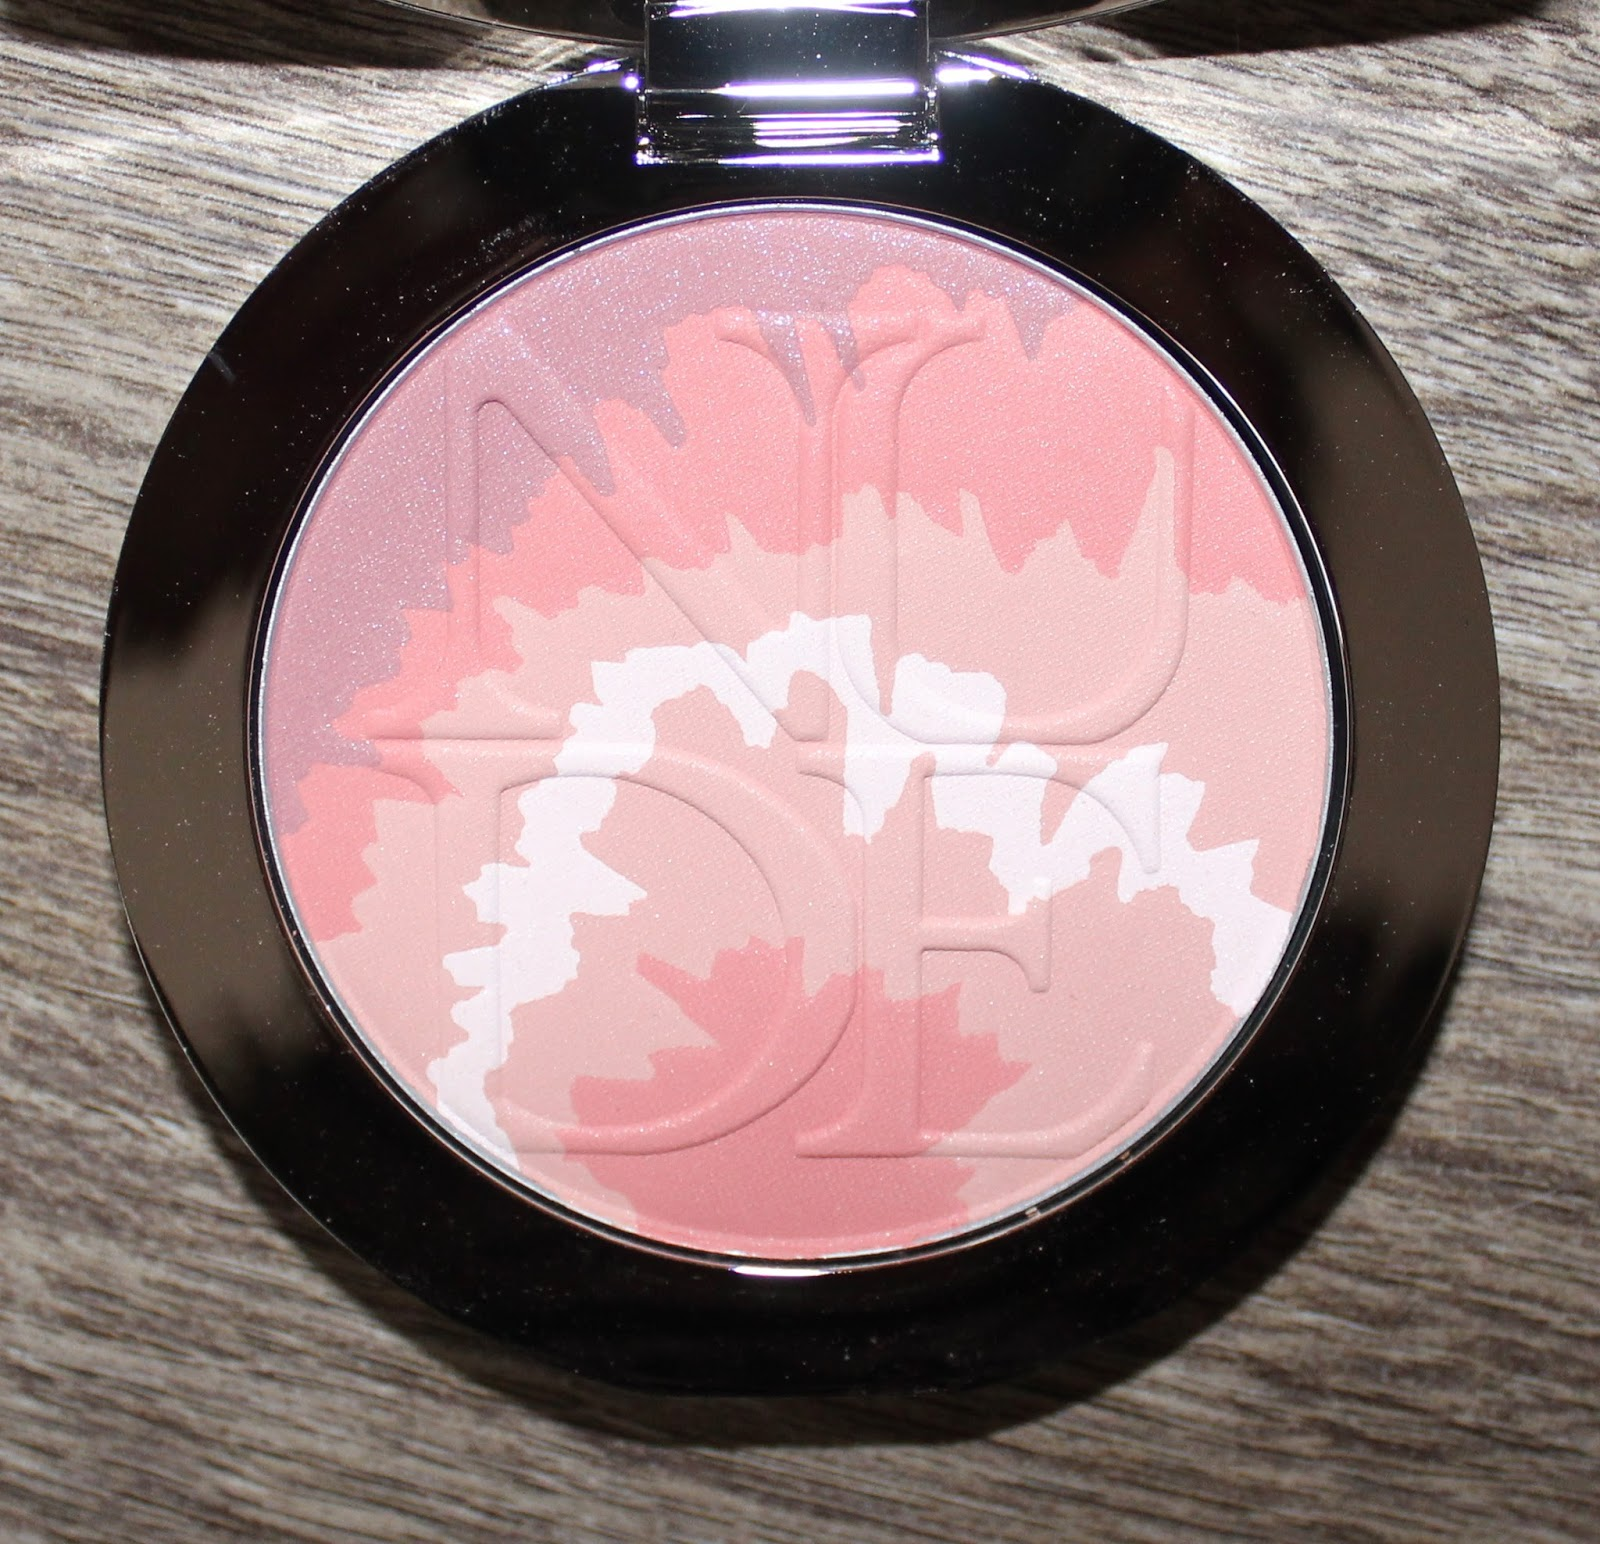 DiorSkin Nude Tan Tie Dye Edition Blush Harmony in Pink Sunrise